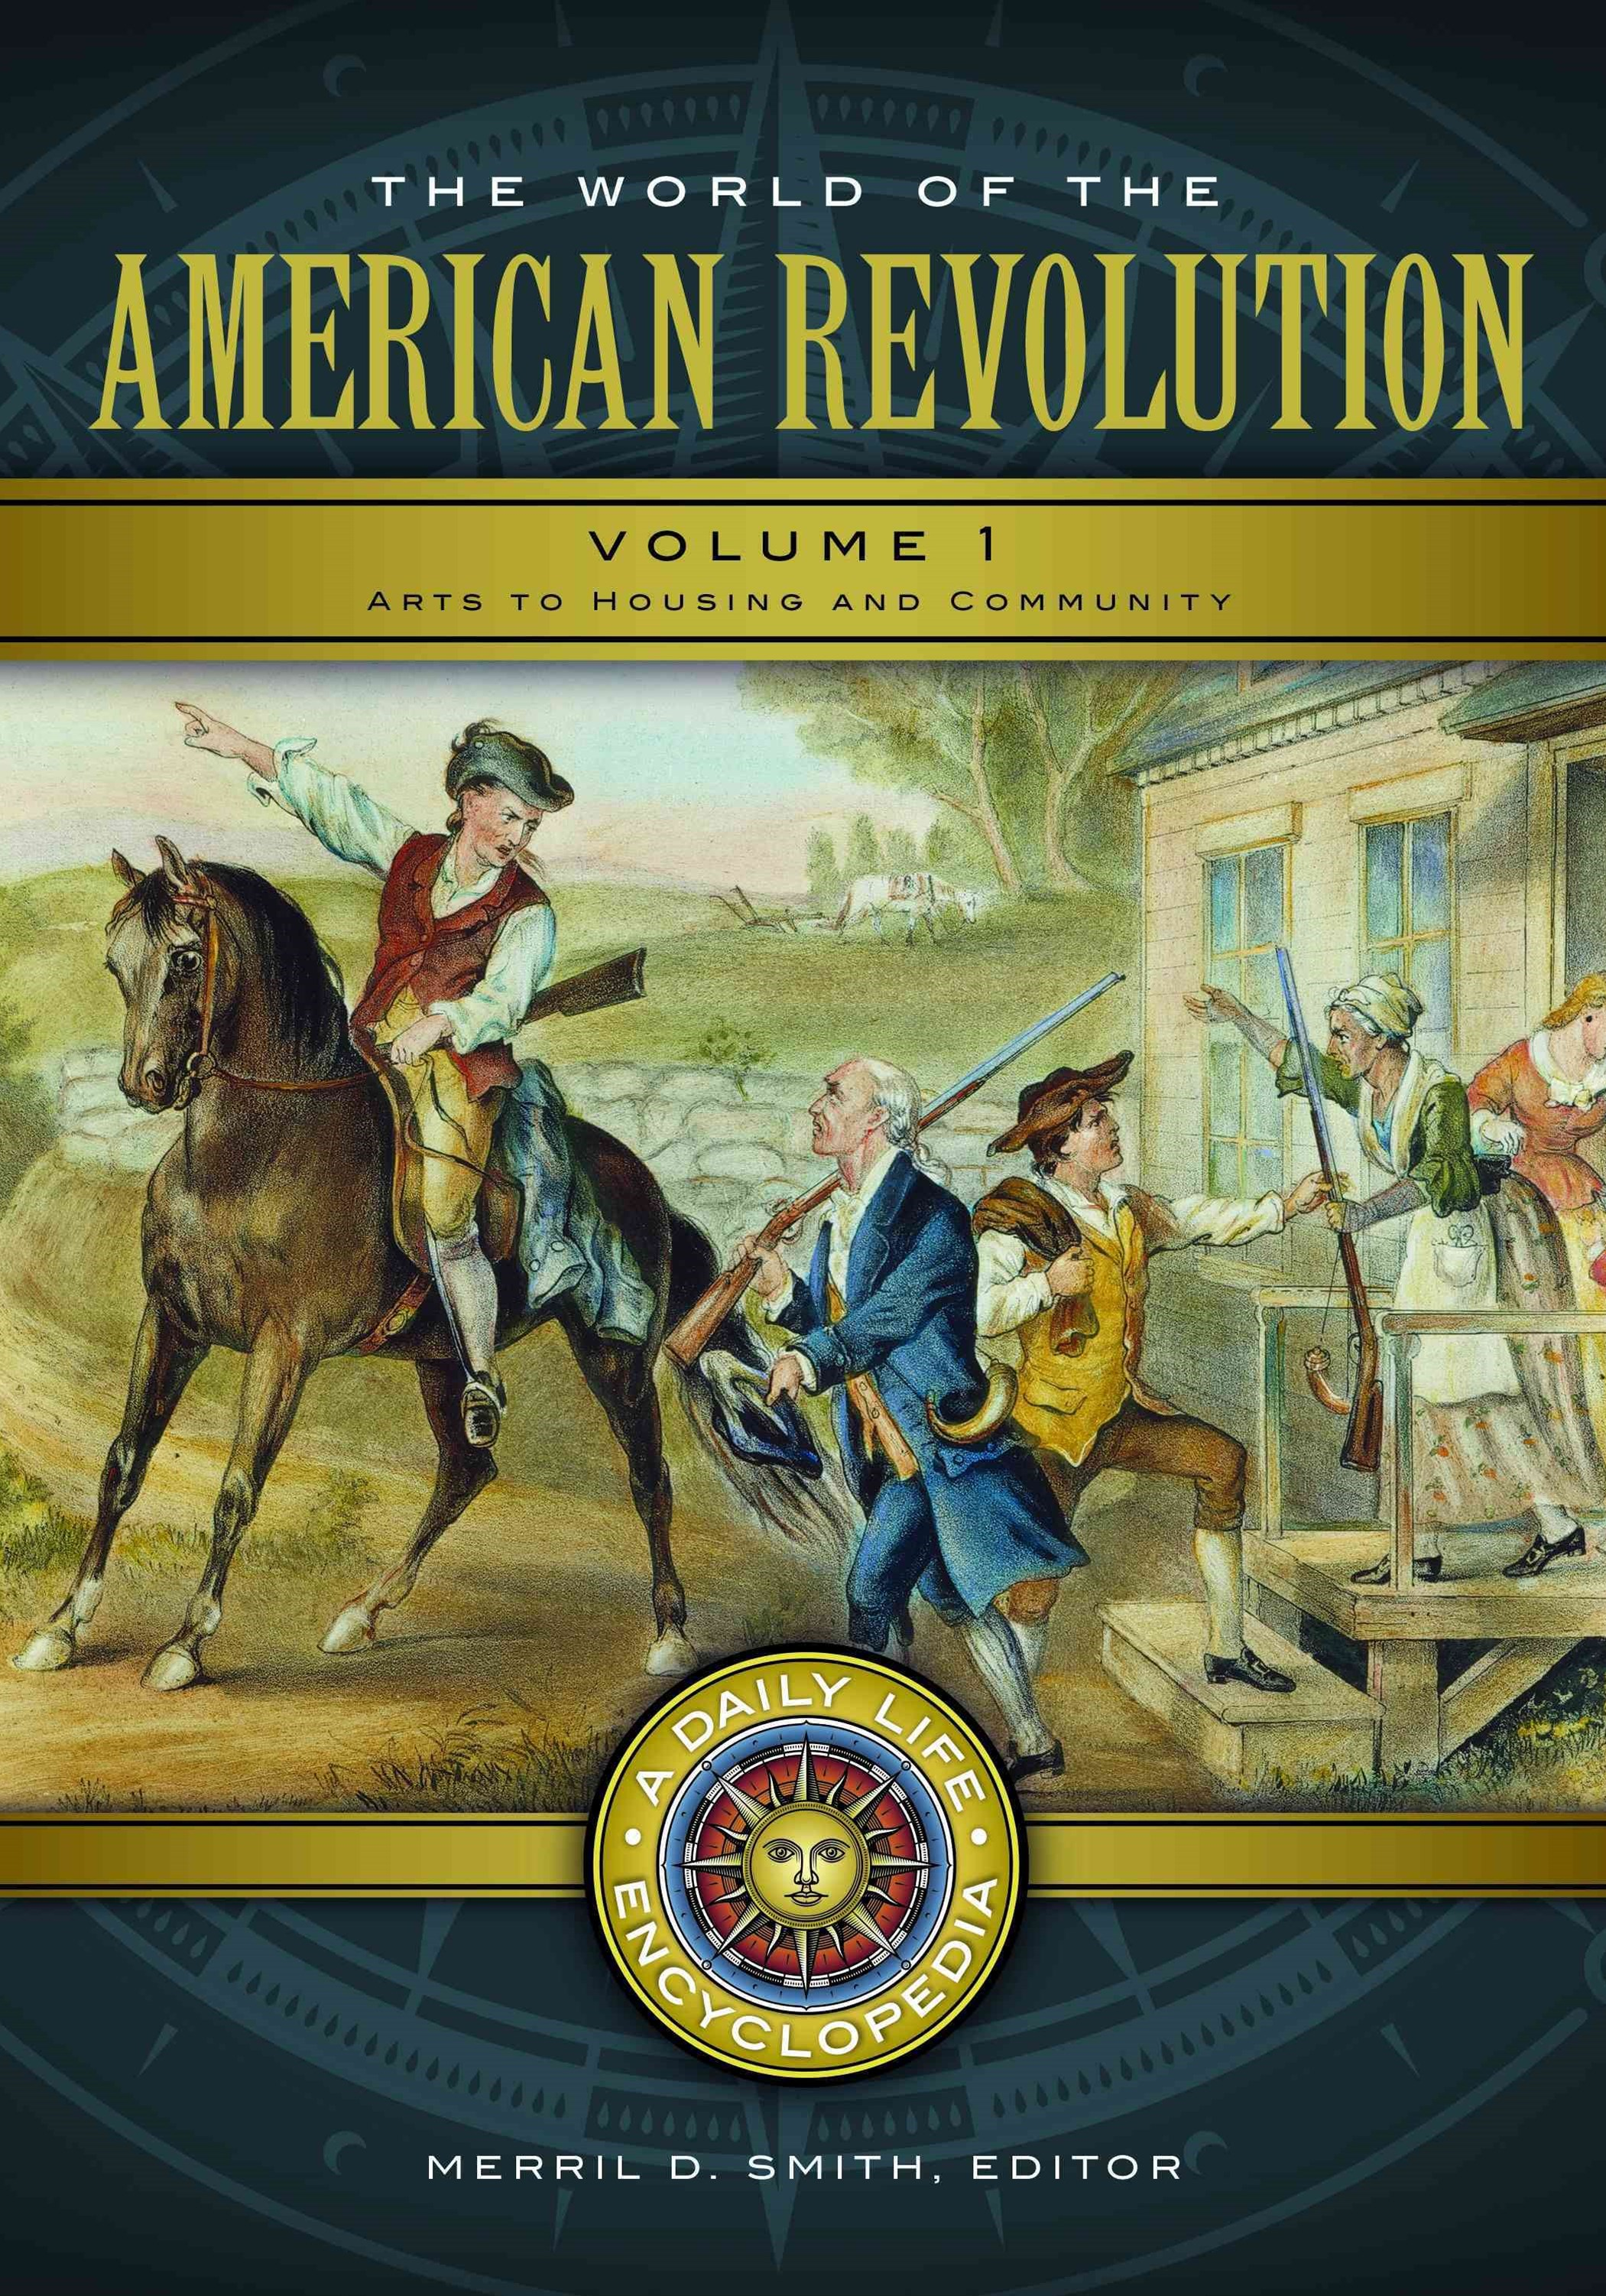 The World of the American Revolution